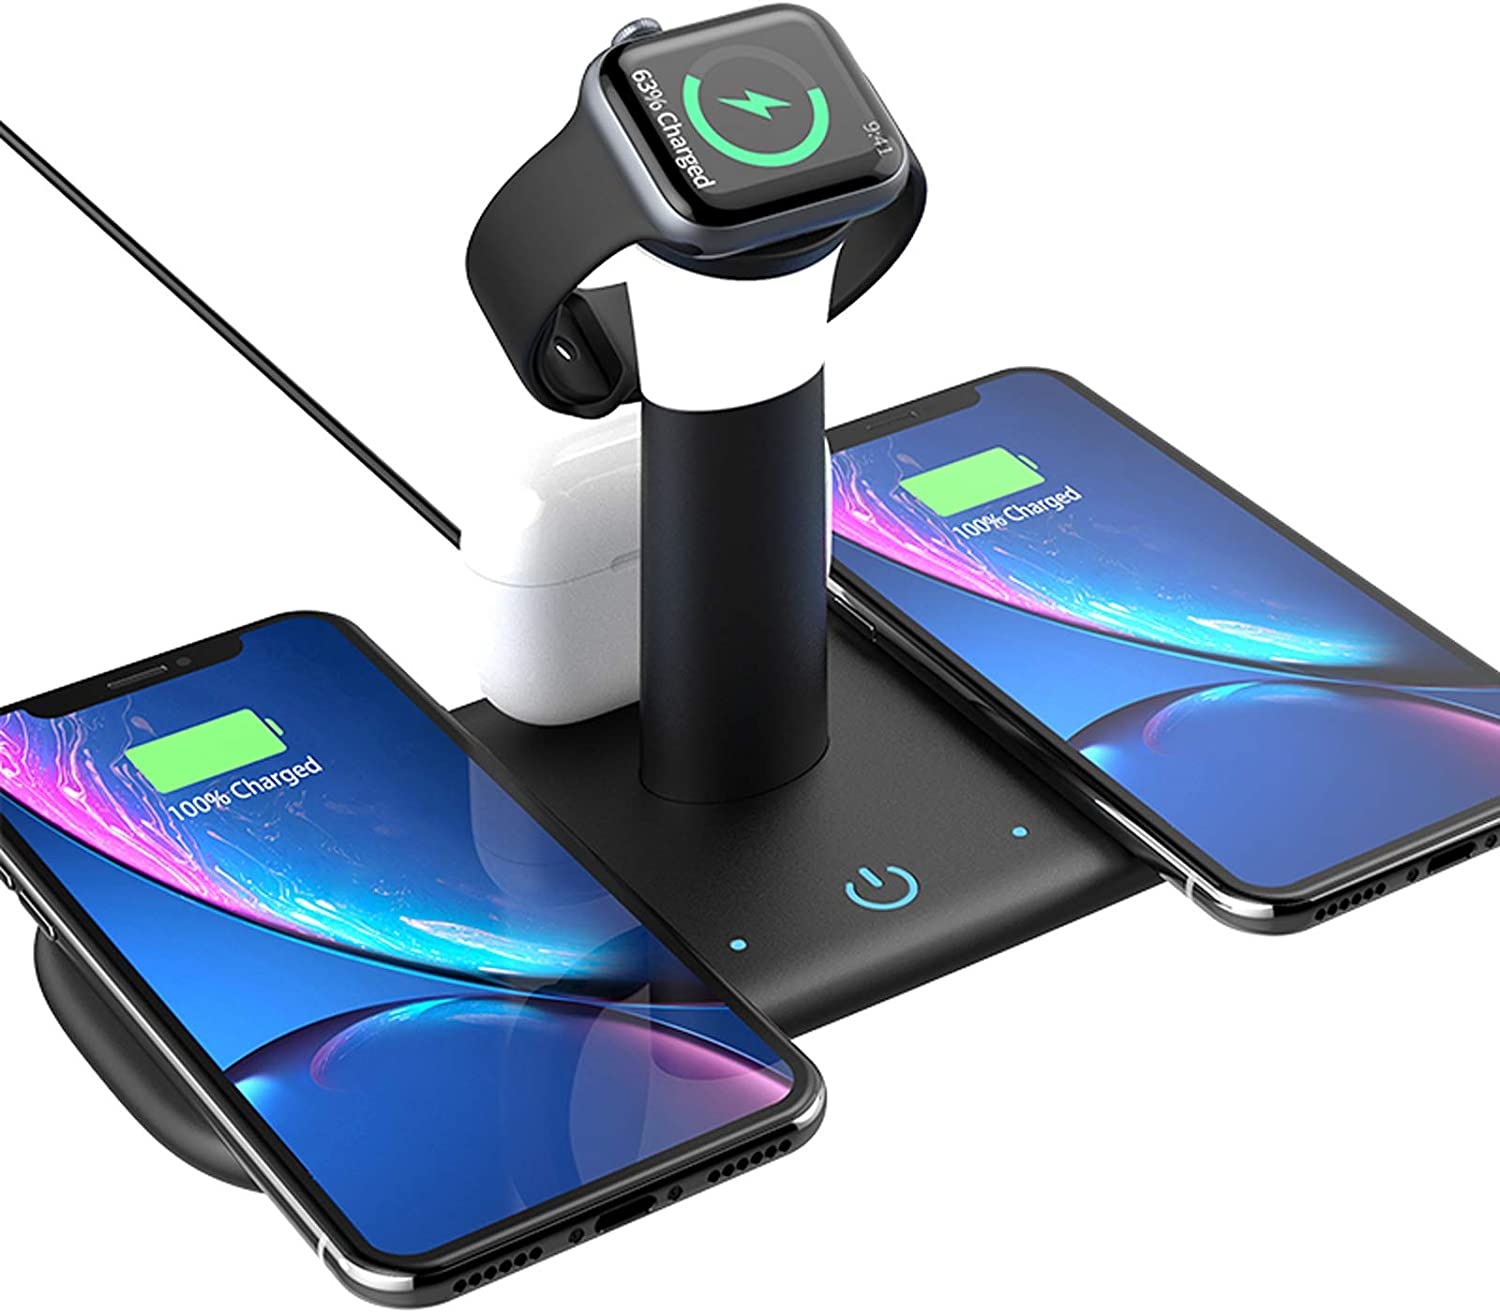 YOVDA Fast Charging Station Dock, 15w Wireless Charger Stand with Night Light, 5-in-1 Qi-Certified Wireless Charger for iPhone 11 Pro/Xs/Xr/8, iWatch 6/Se/5/4/3 and Airpods, Samsung S20